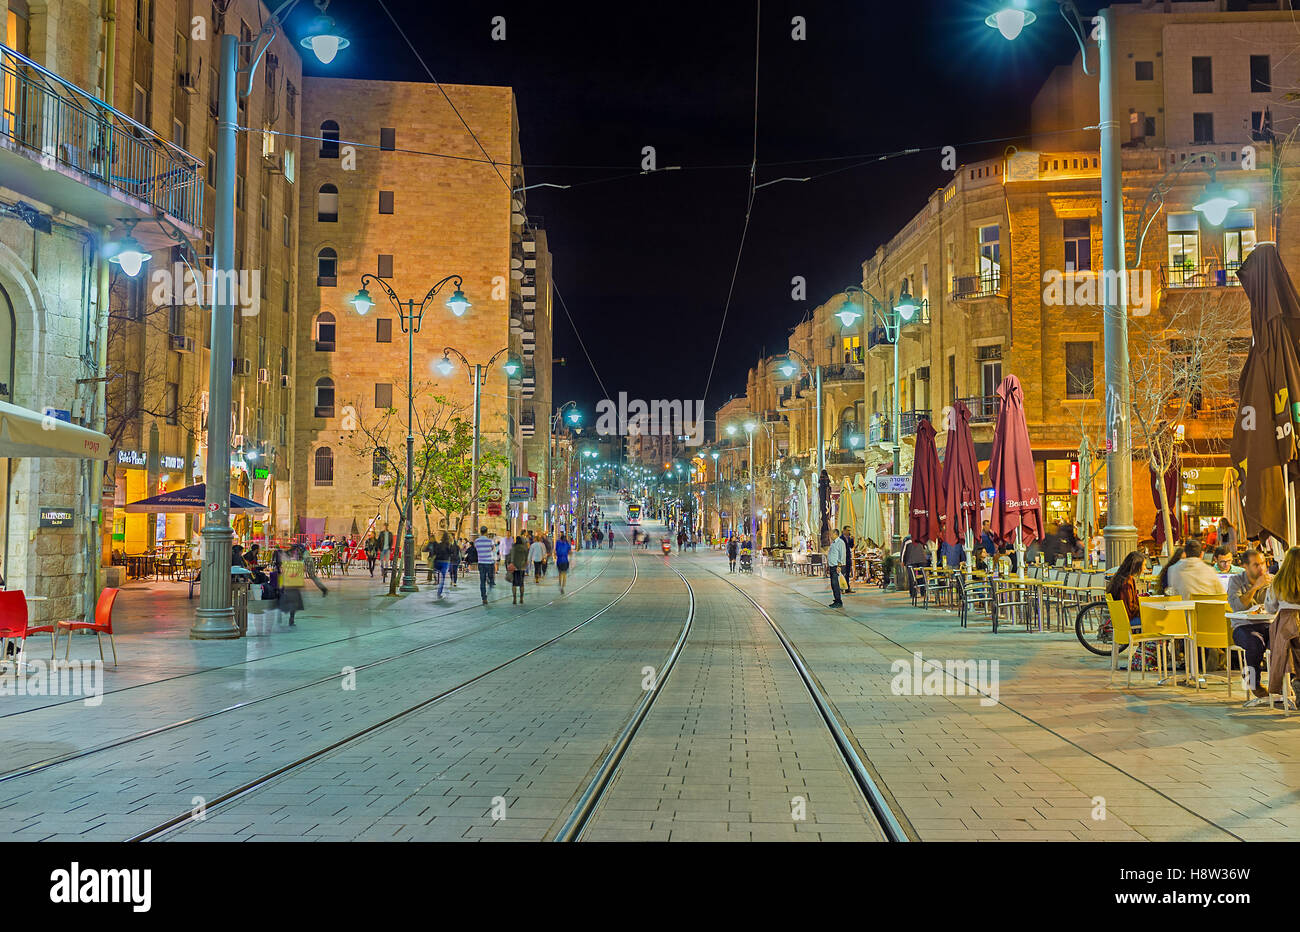 The pleasant walk in the evening city along the railways of Jaffa Road - Stock Image